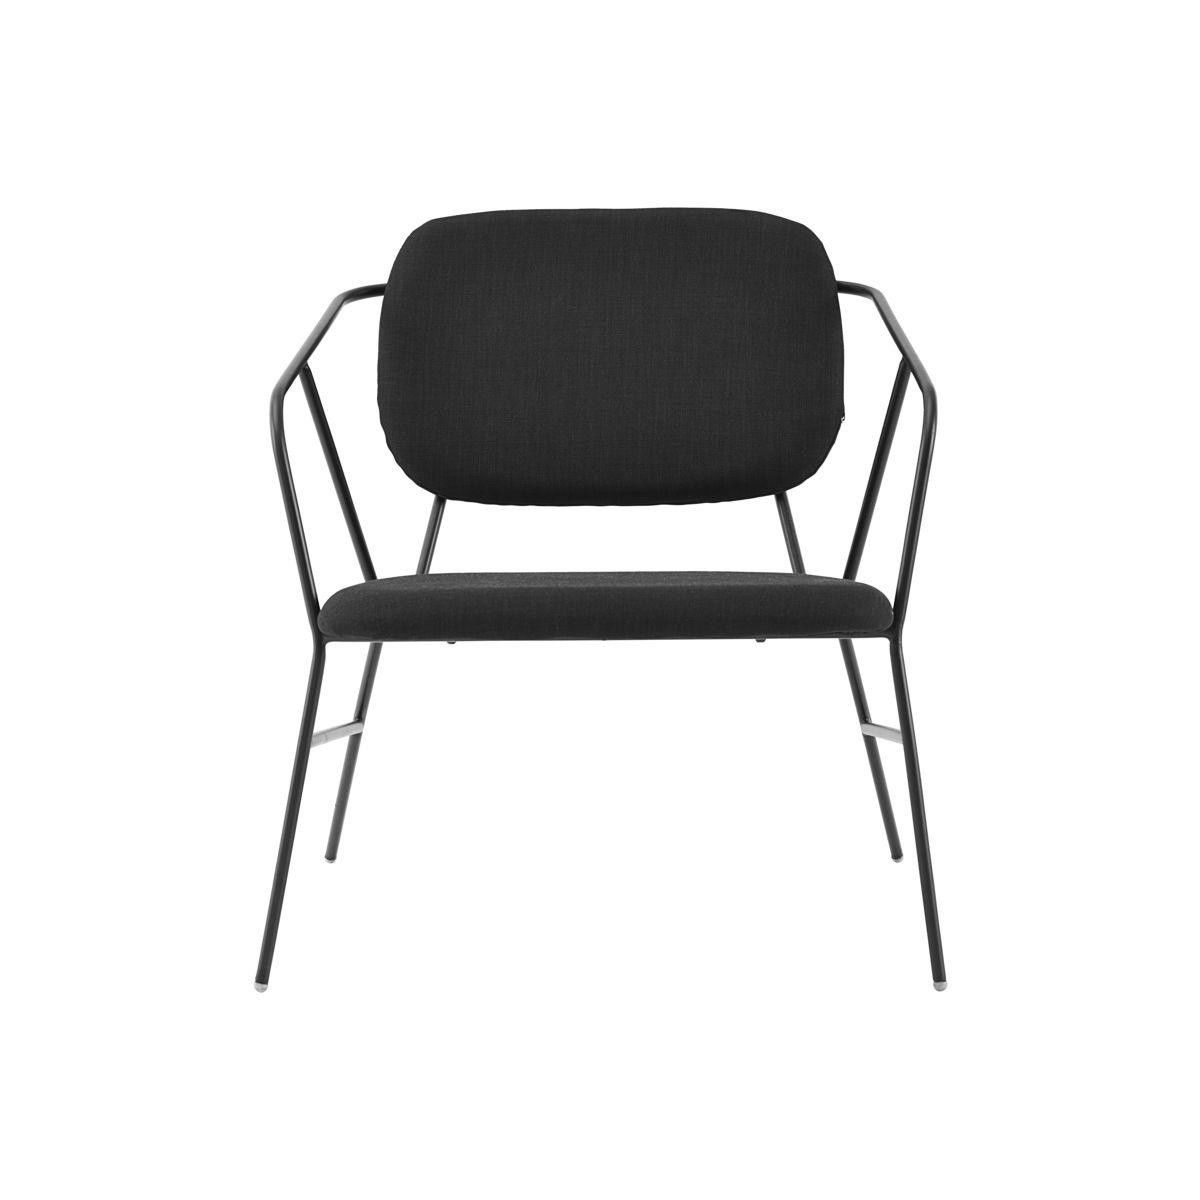 Lounge sessel schwarz  House Doctor Lounge Chair | House Doctor | AmbienteDirect.com